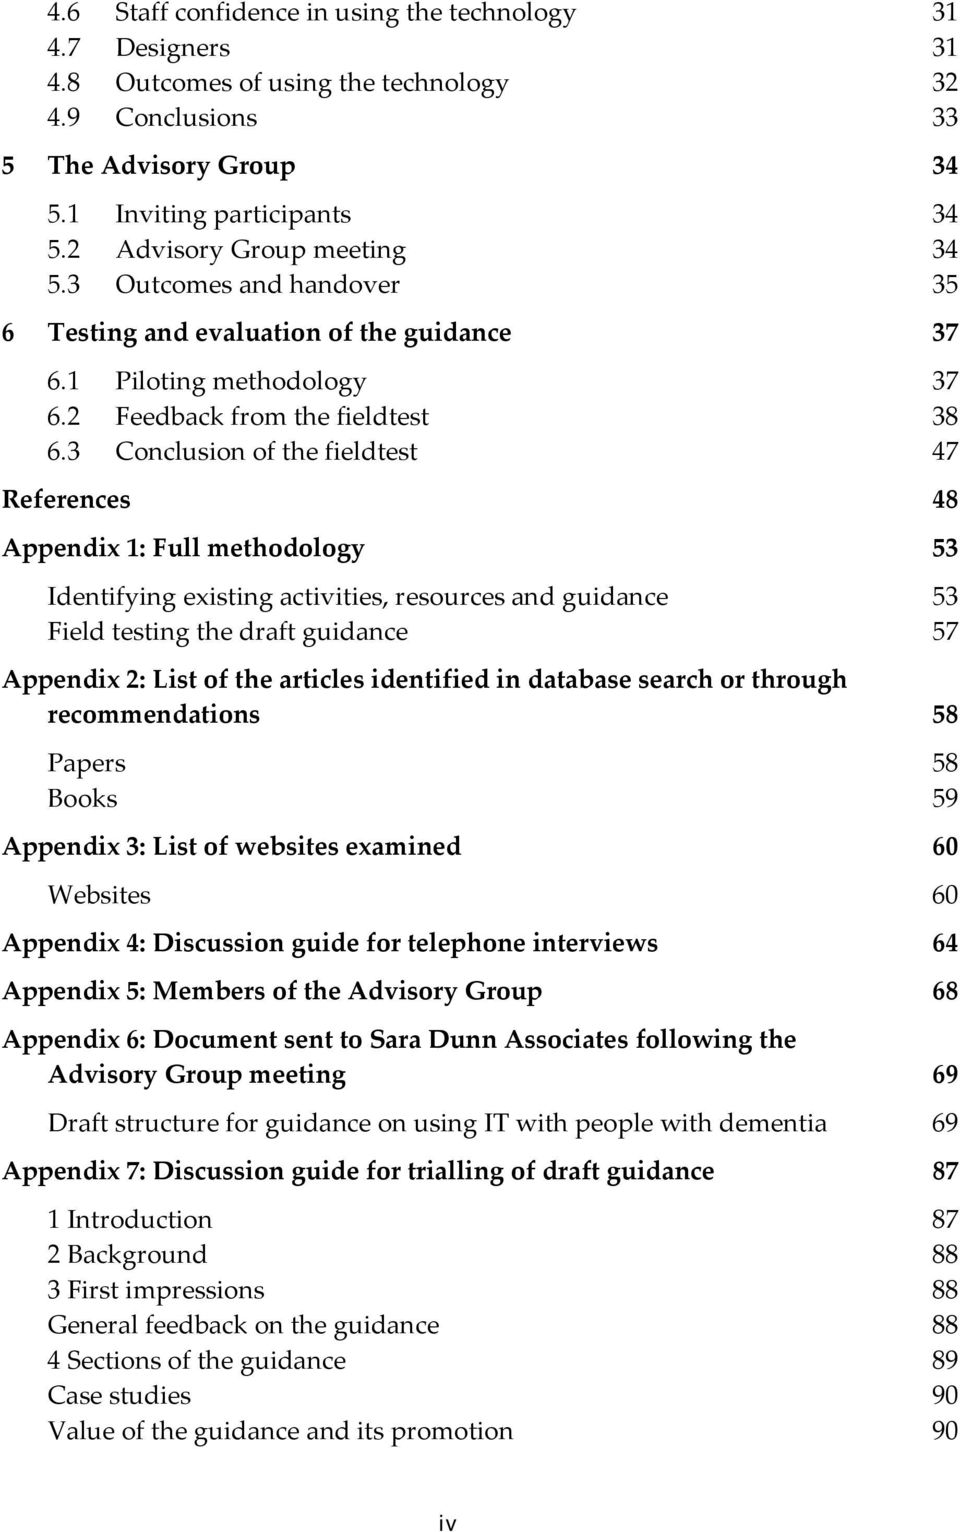 3 Conclusion of the fieldtest 47 References 48 Appendix 1: Full methodology 53 Identifying existing activities, resources and guidance 53 Field testing the draft guidance 57 Appendix 2: List of the